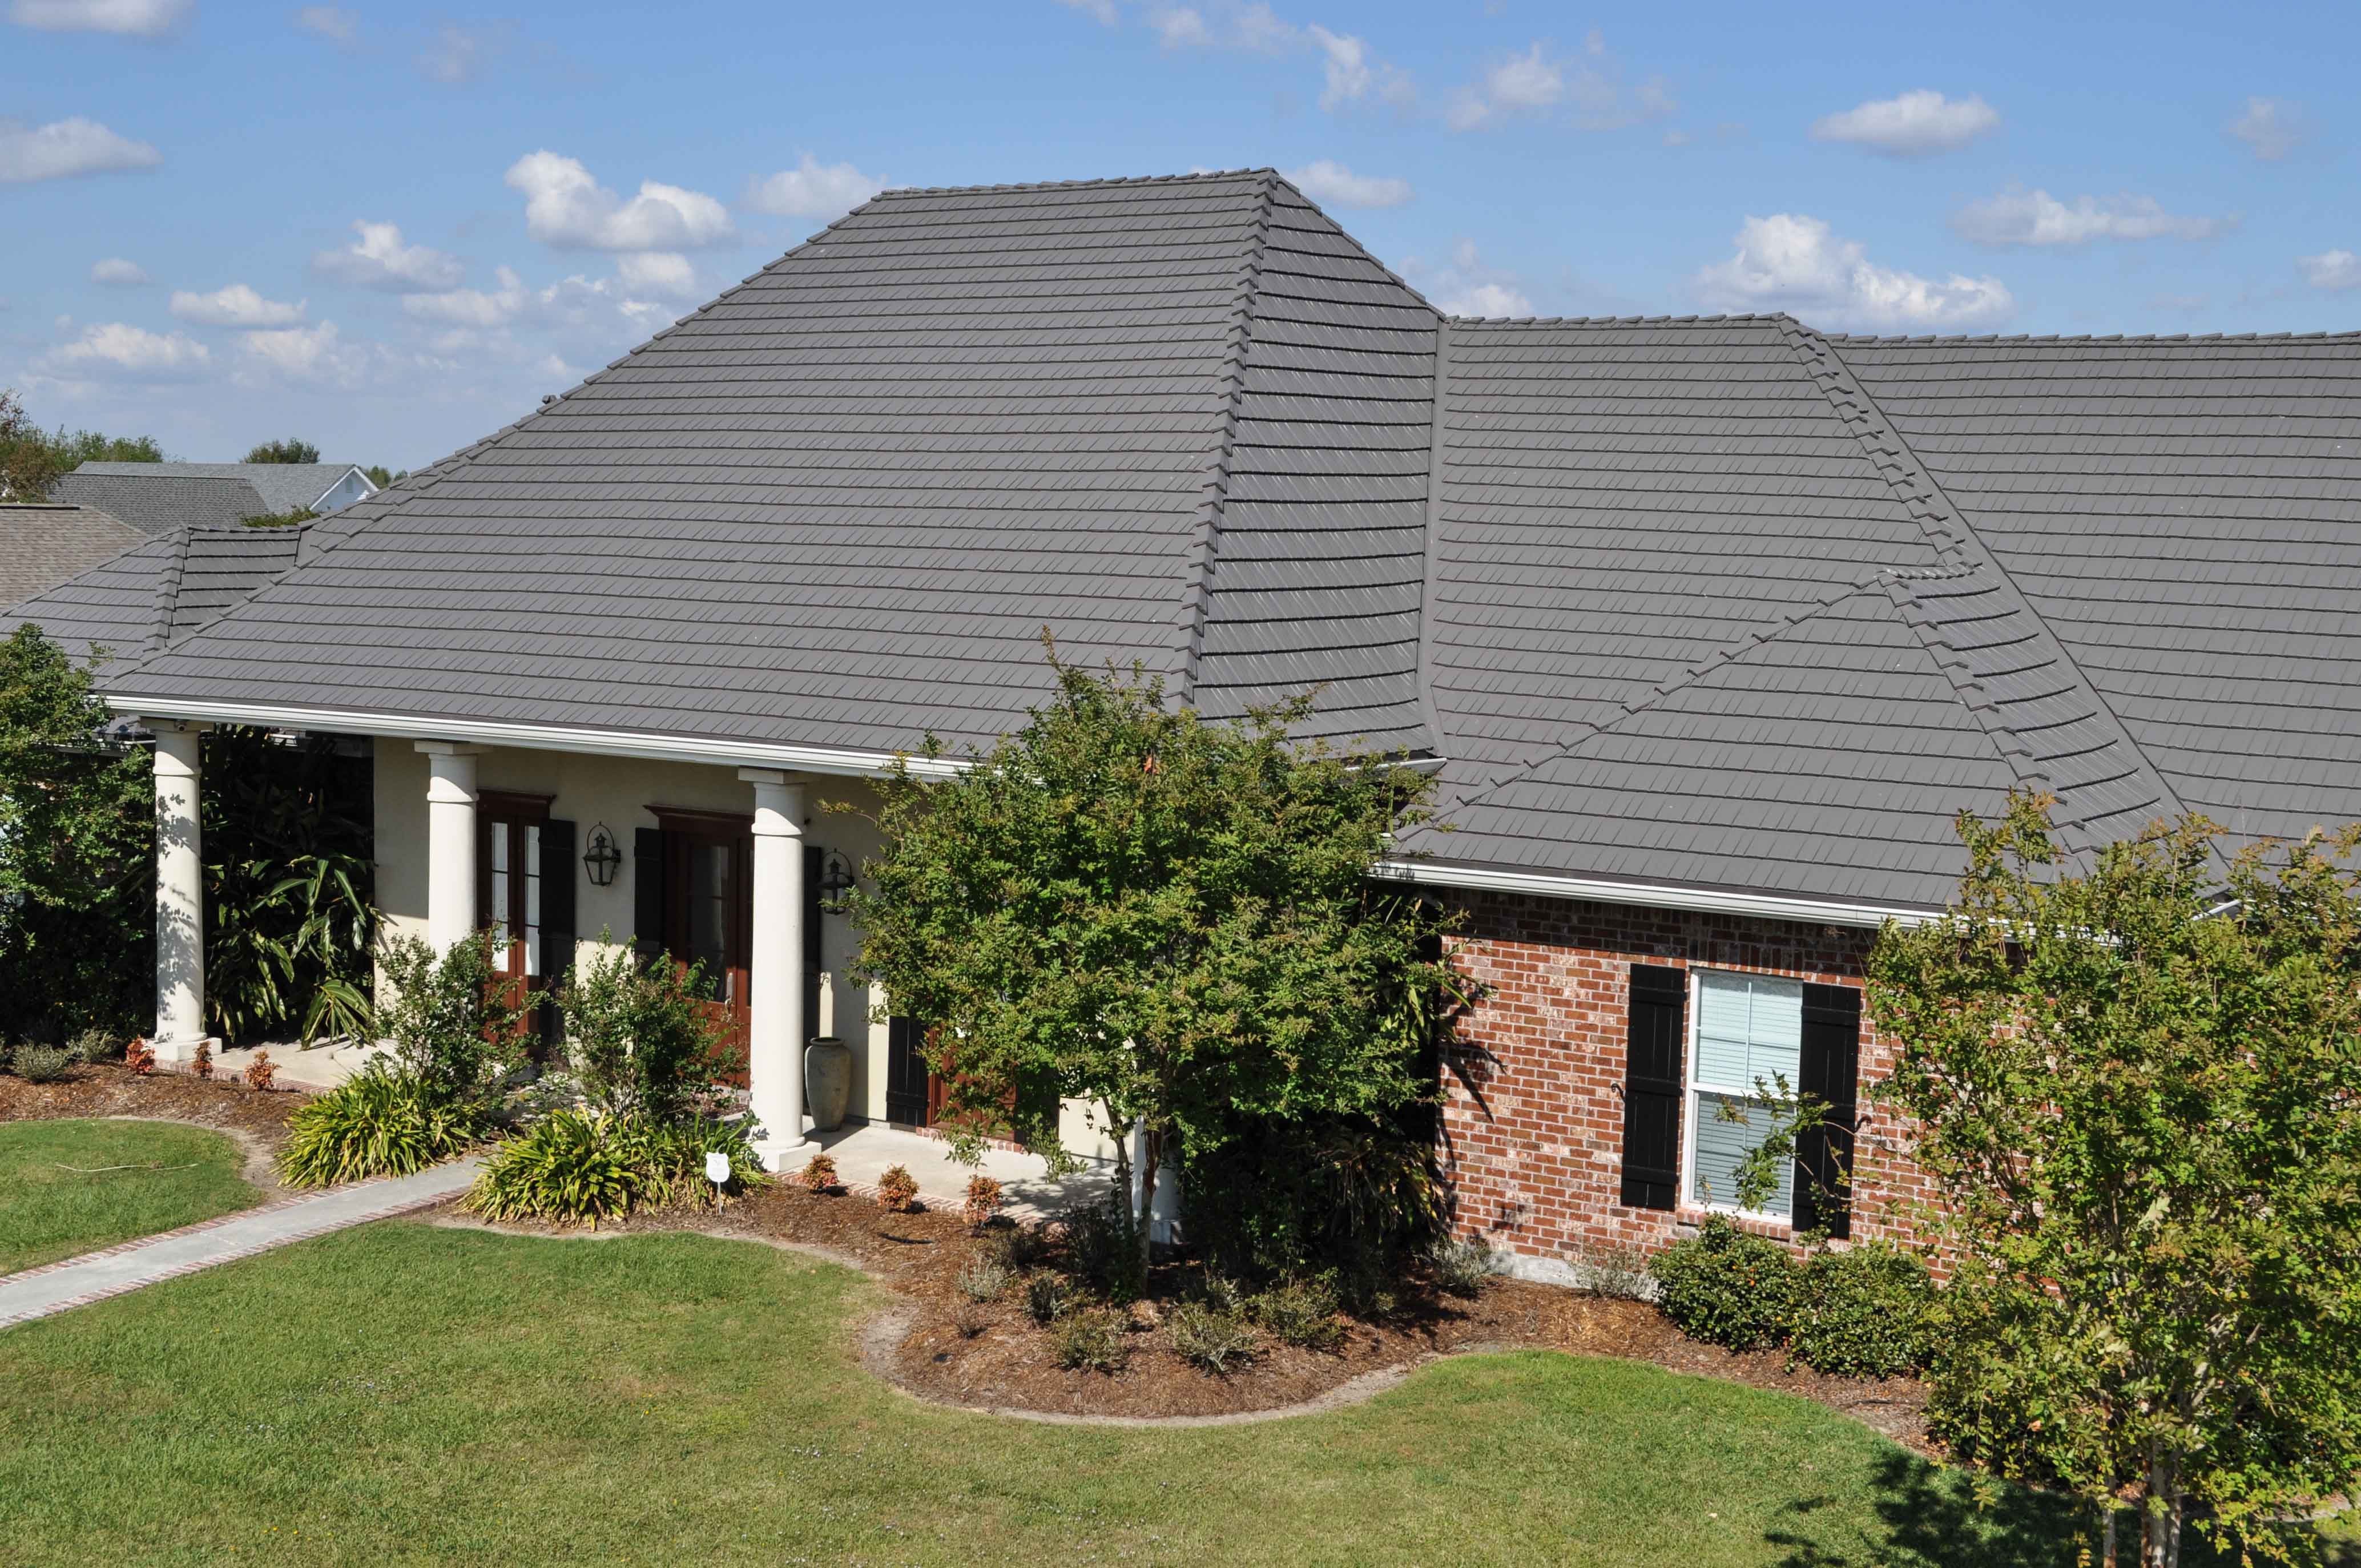 Boost your roof hipped roofing 101 gt donaghue for Metal hip roof